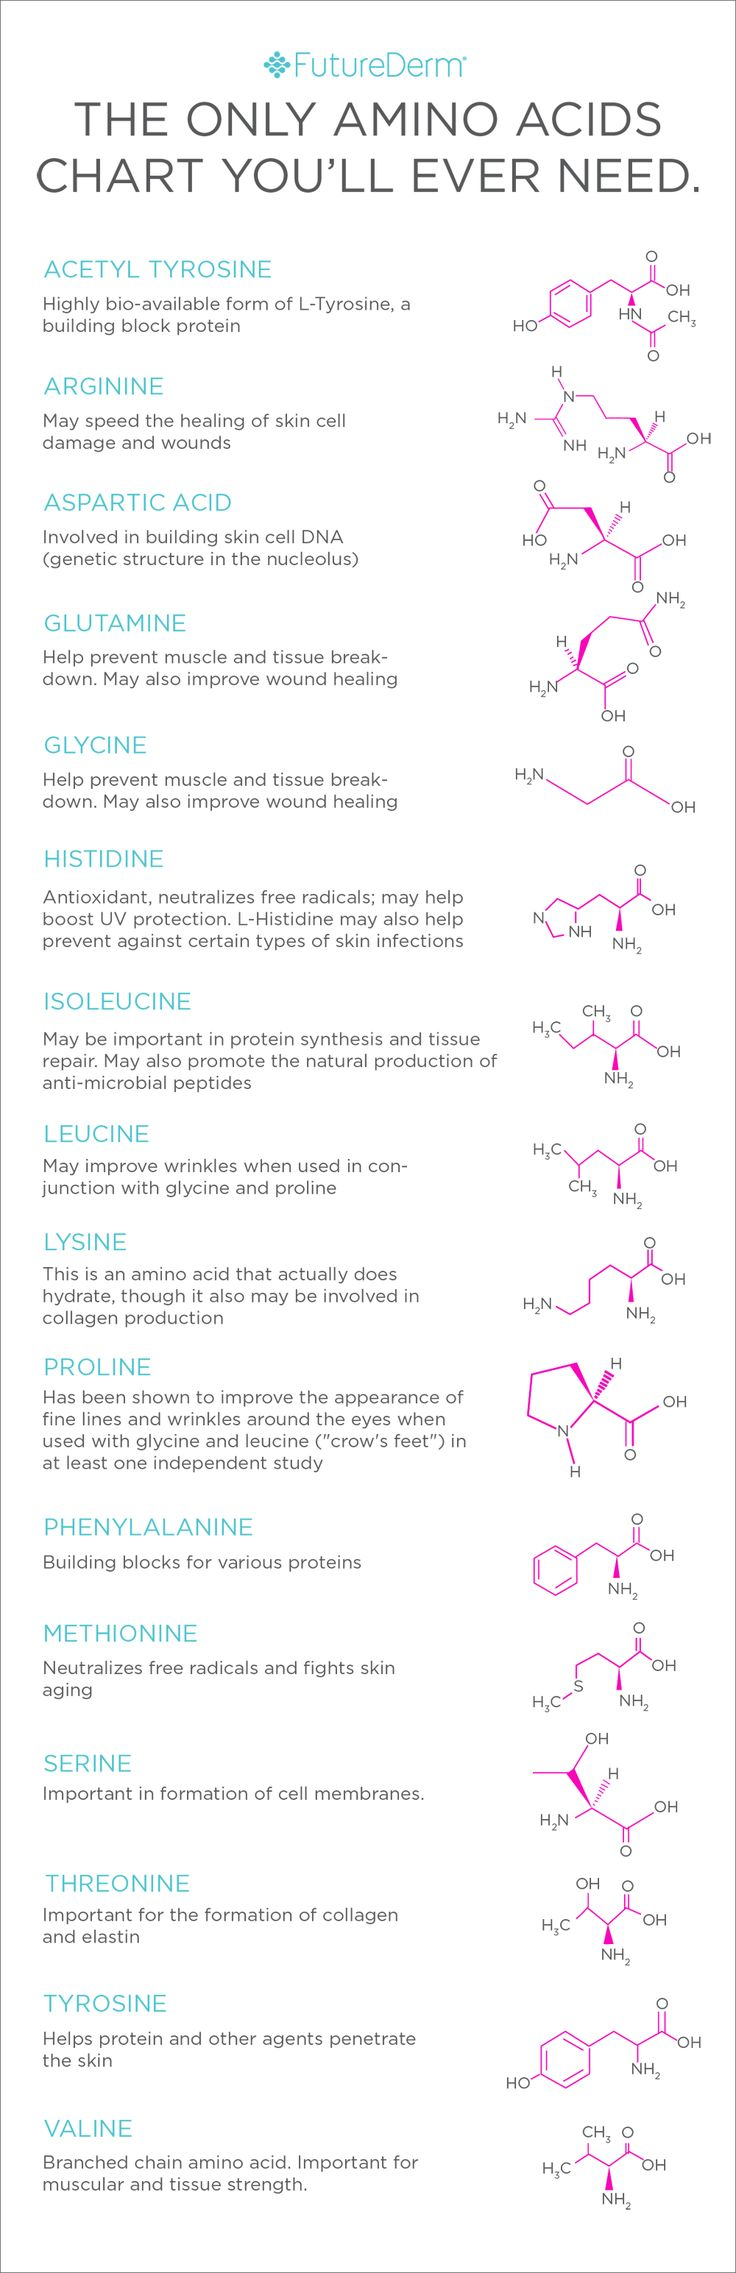 DO AMINO ACIDS ACTUALLY DO ANYTHING IN SKIN CARE?